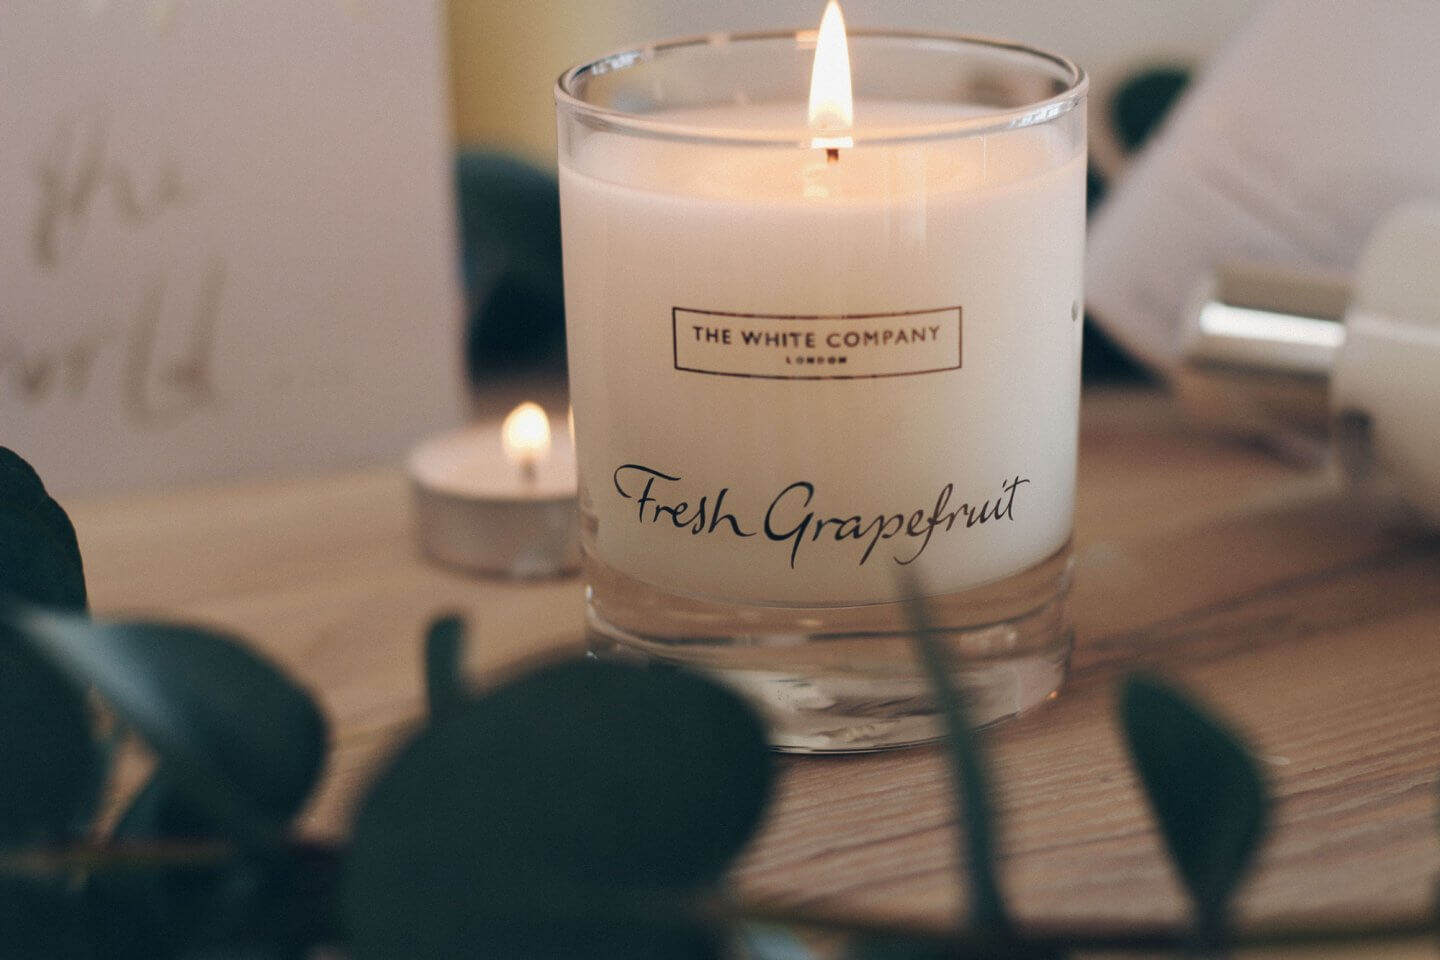 The White Company Fresh Grapefruit Candle